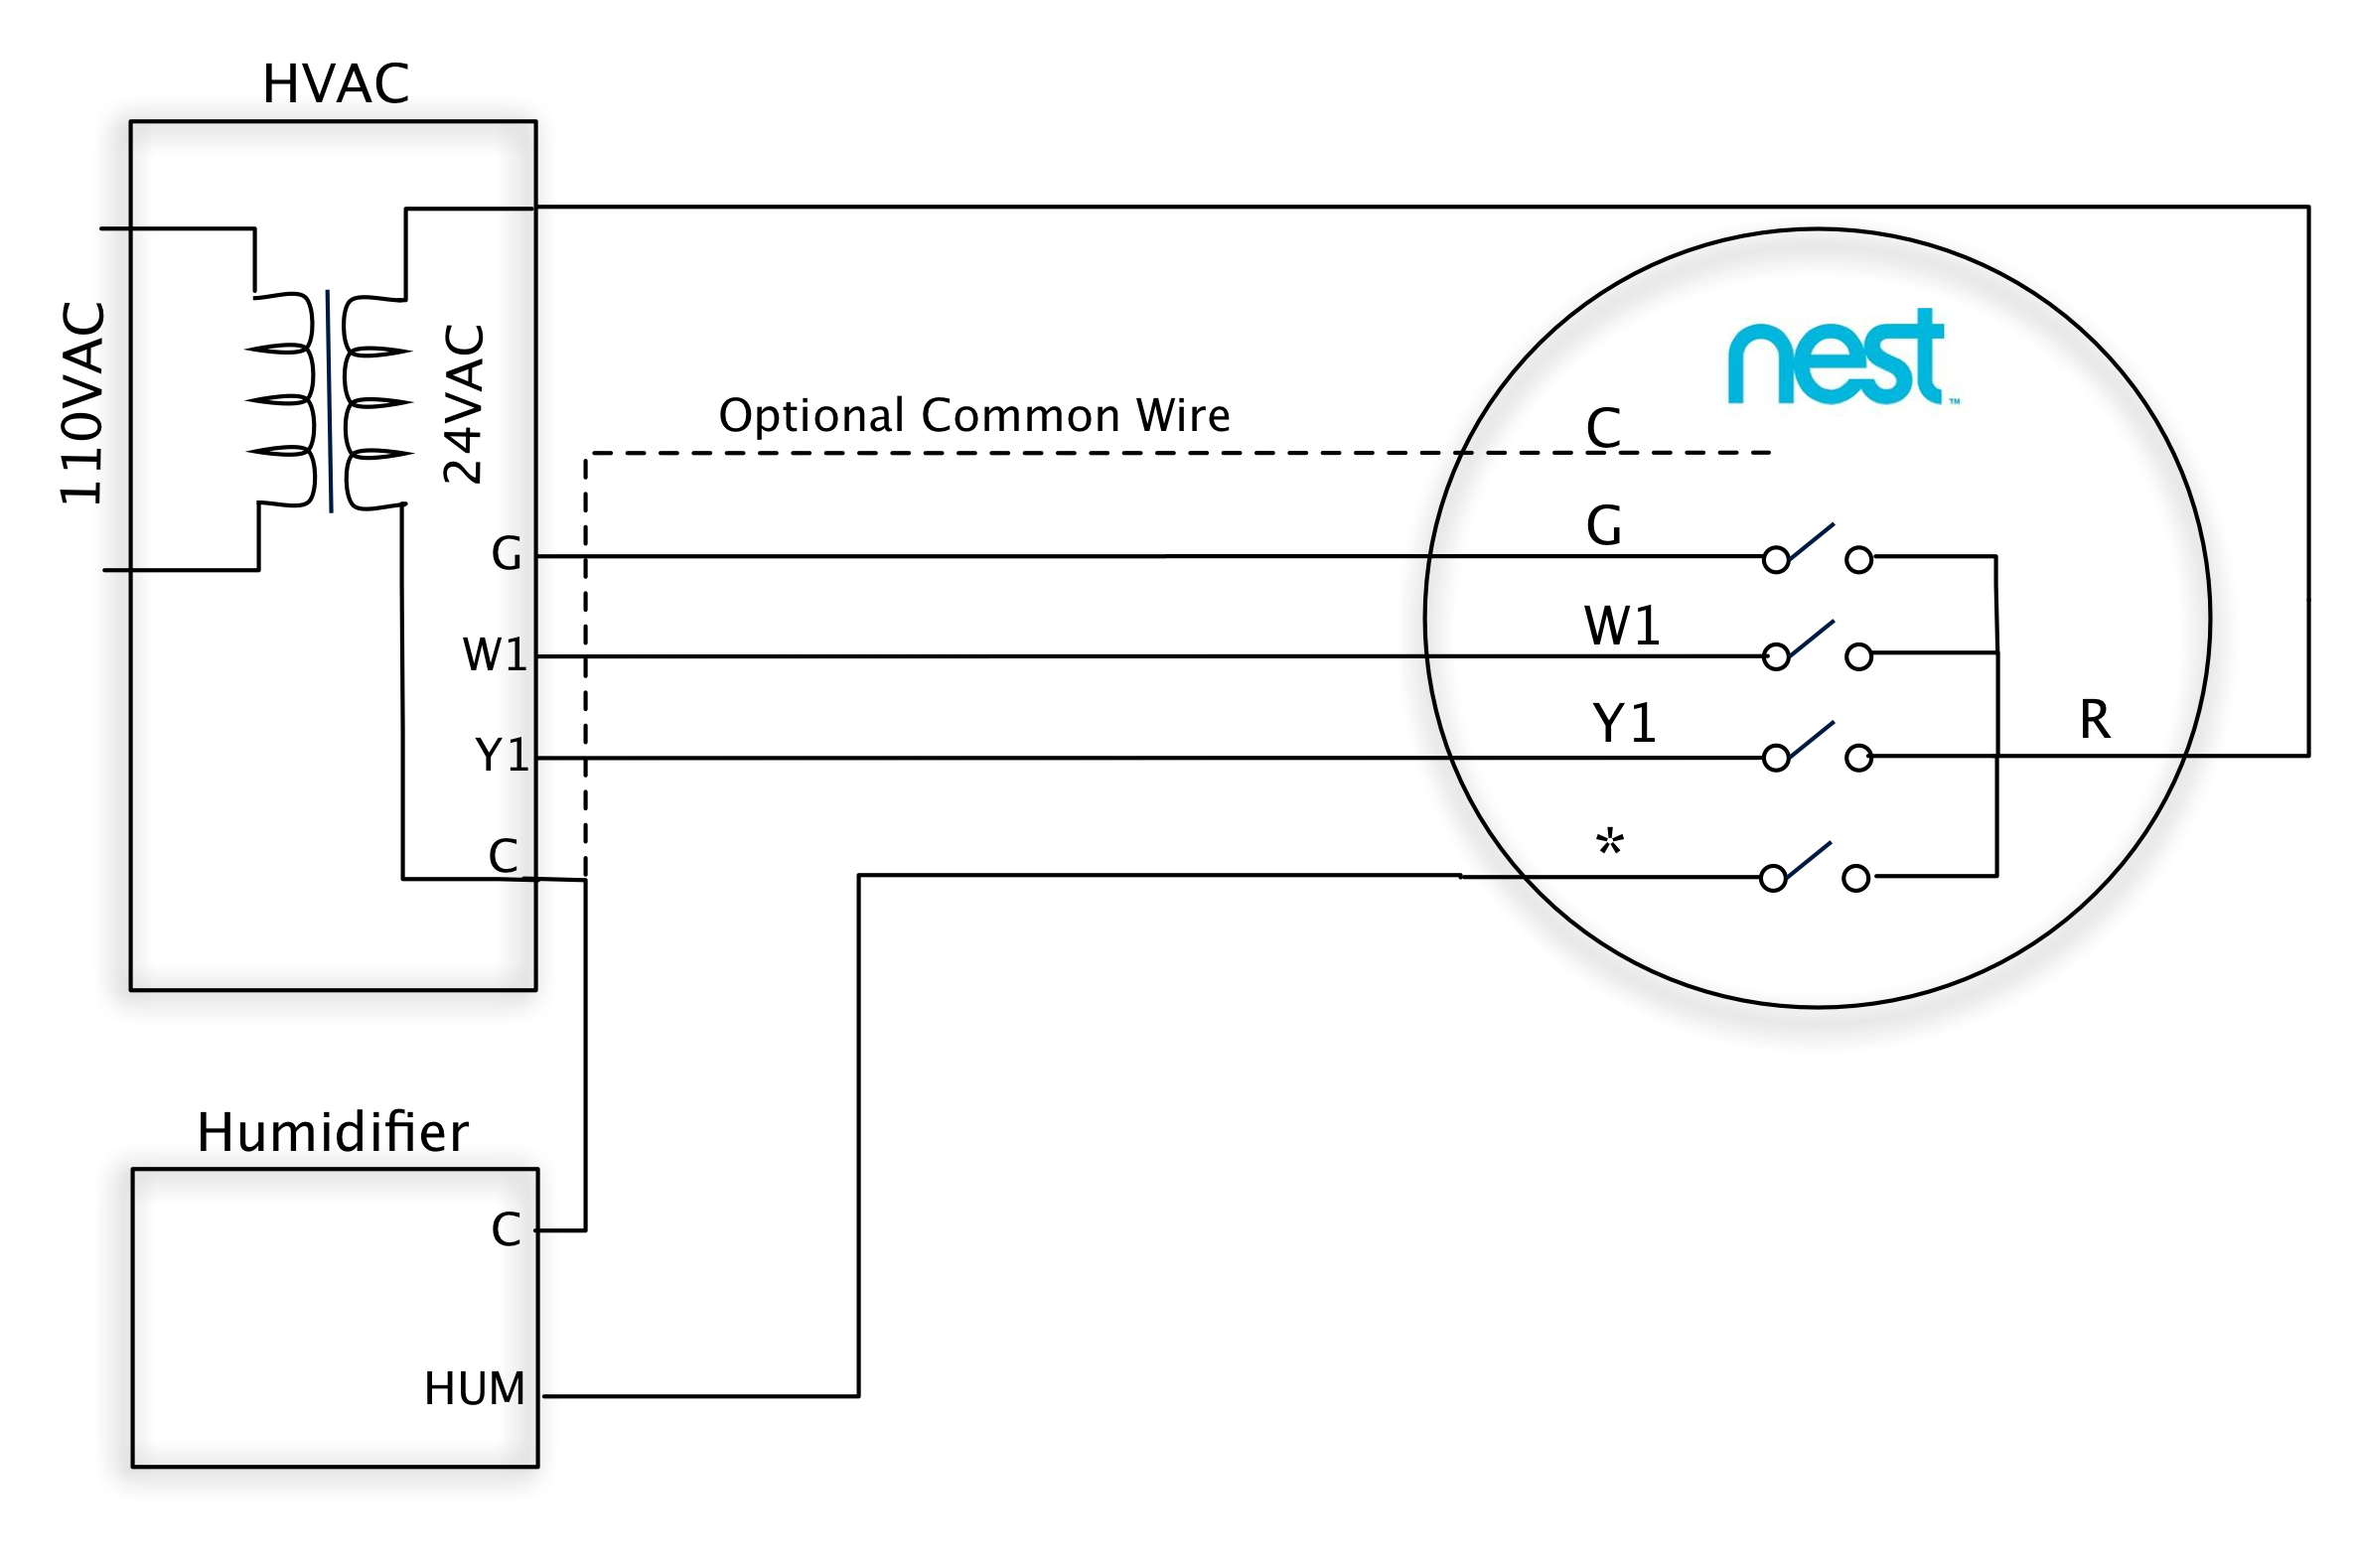 nest wiring diagram wiring diagram database rh brandgogo co ranco humidistat wiring diagram honeywell humidistat wiring diagram